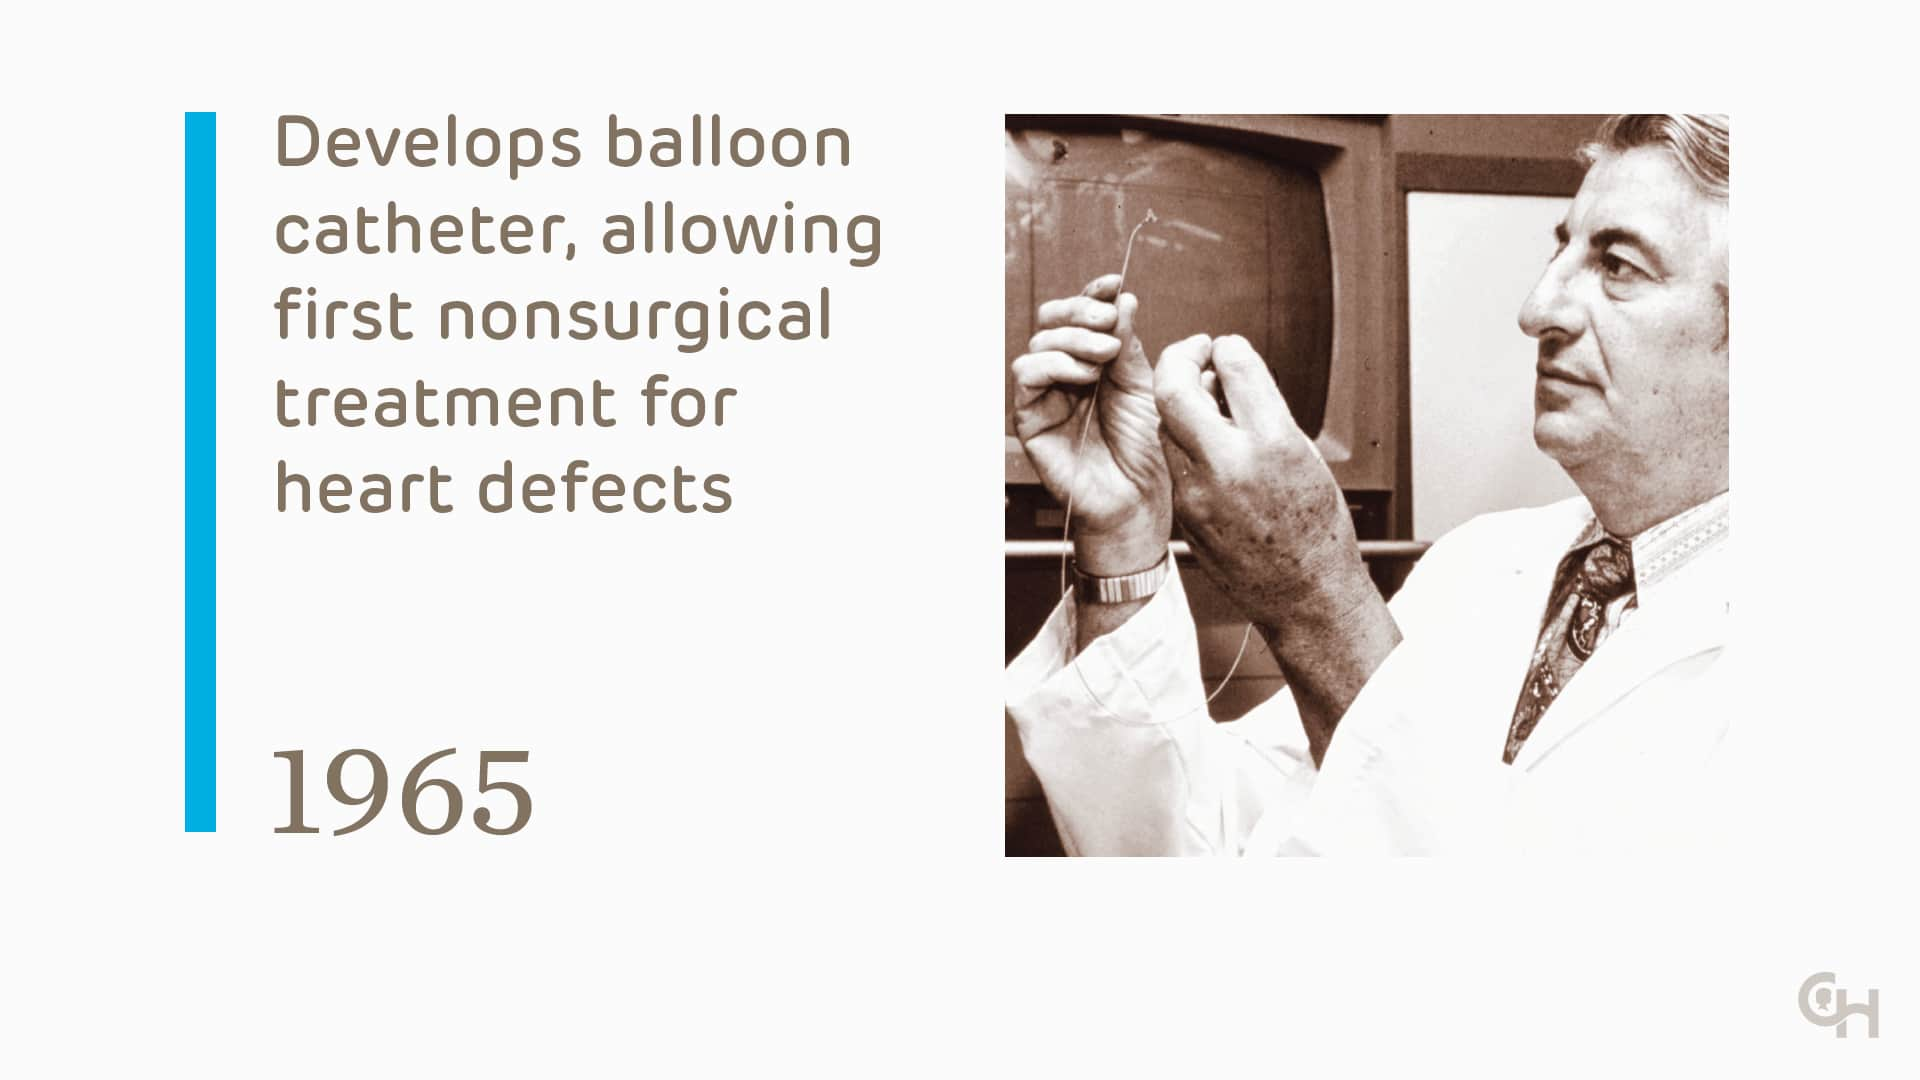 Develops balloon catheter, allowing first nonsurgical treatment for heart defects - 1965